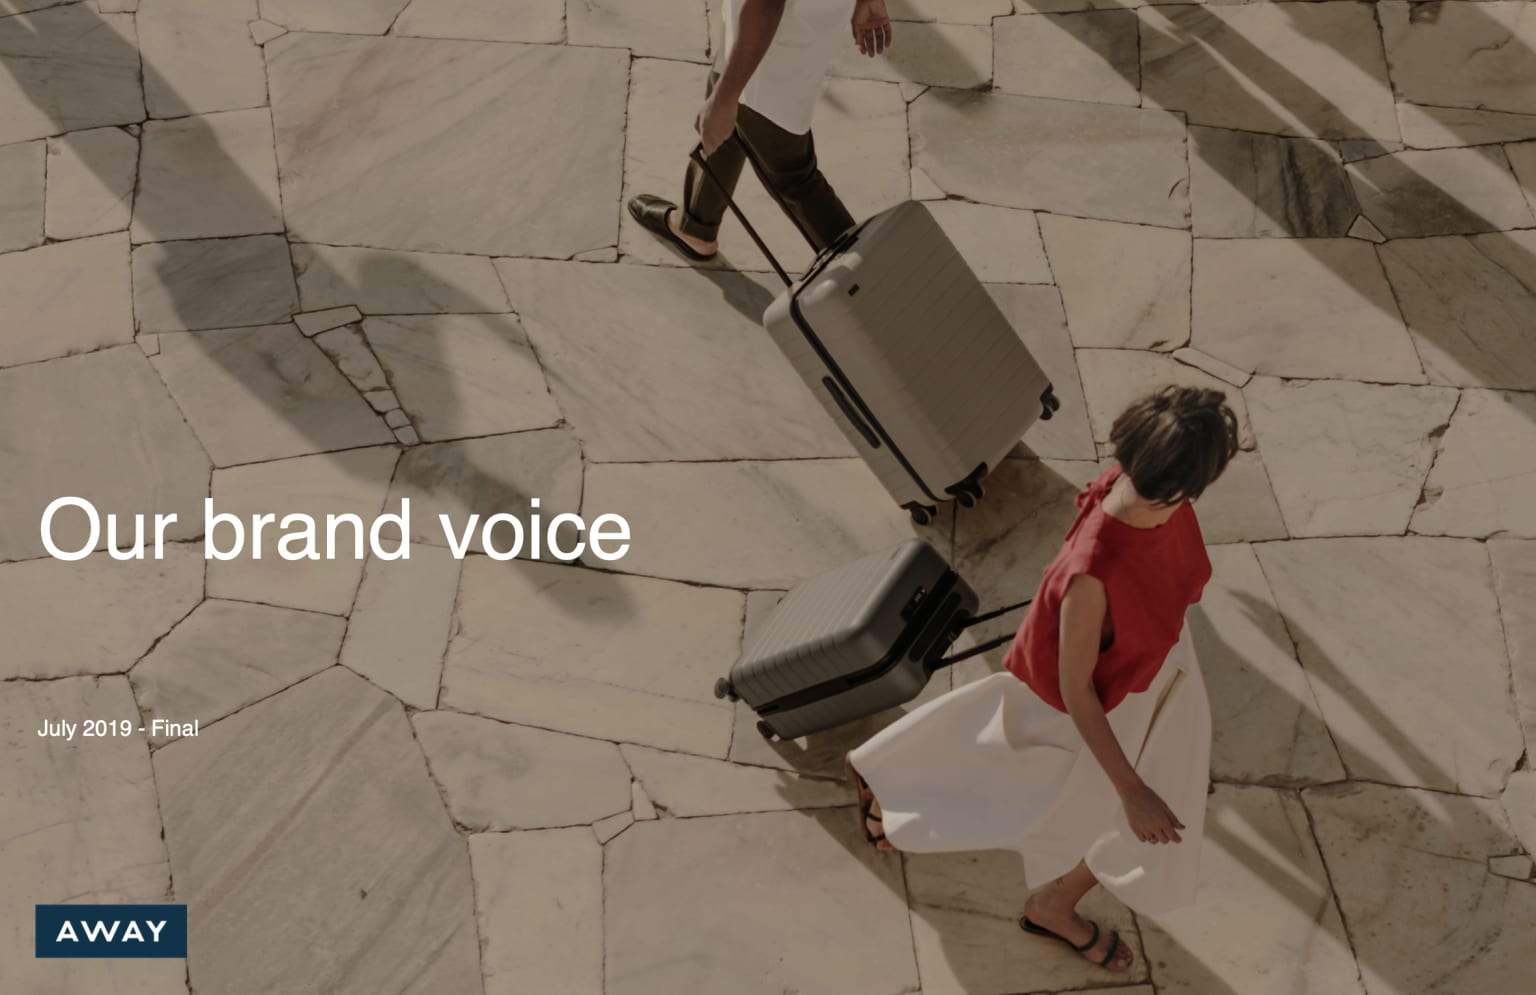 Away: Voice Guidelines